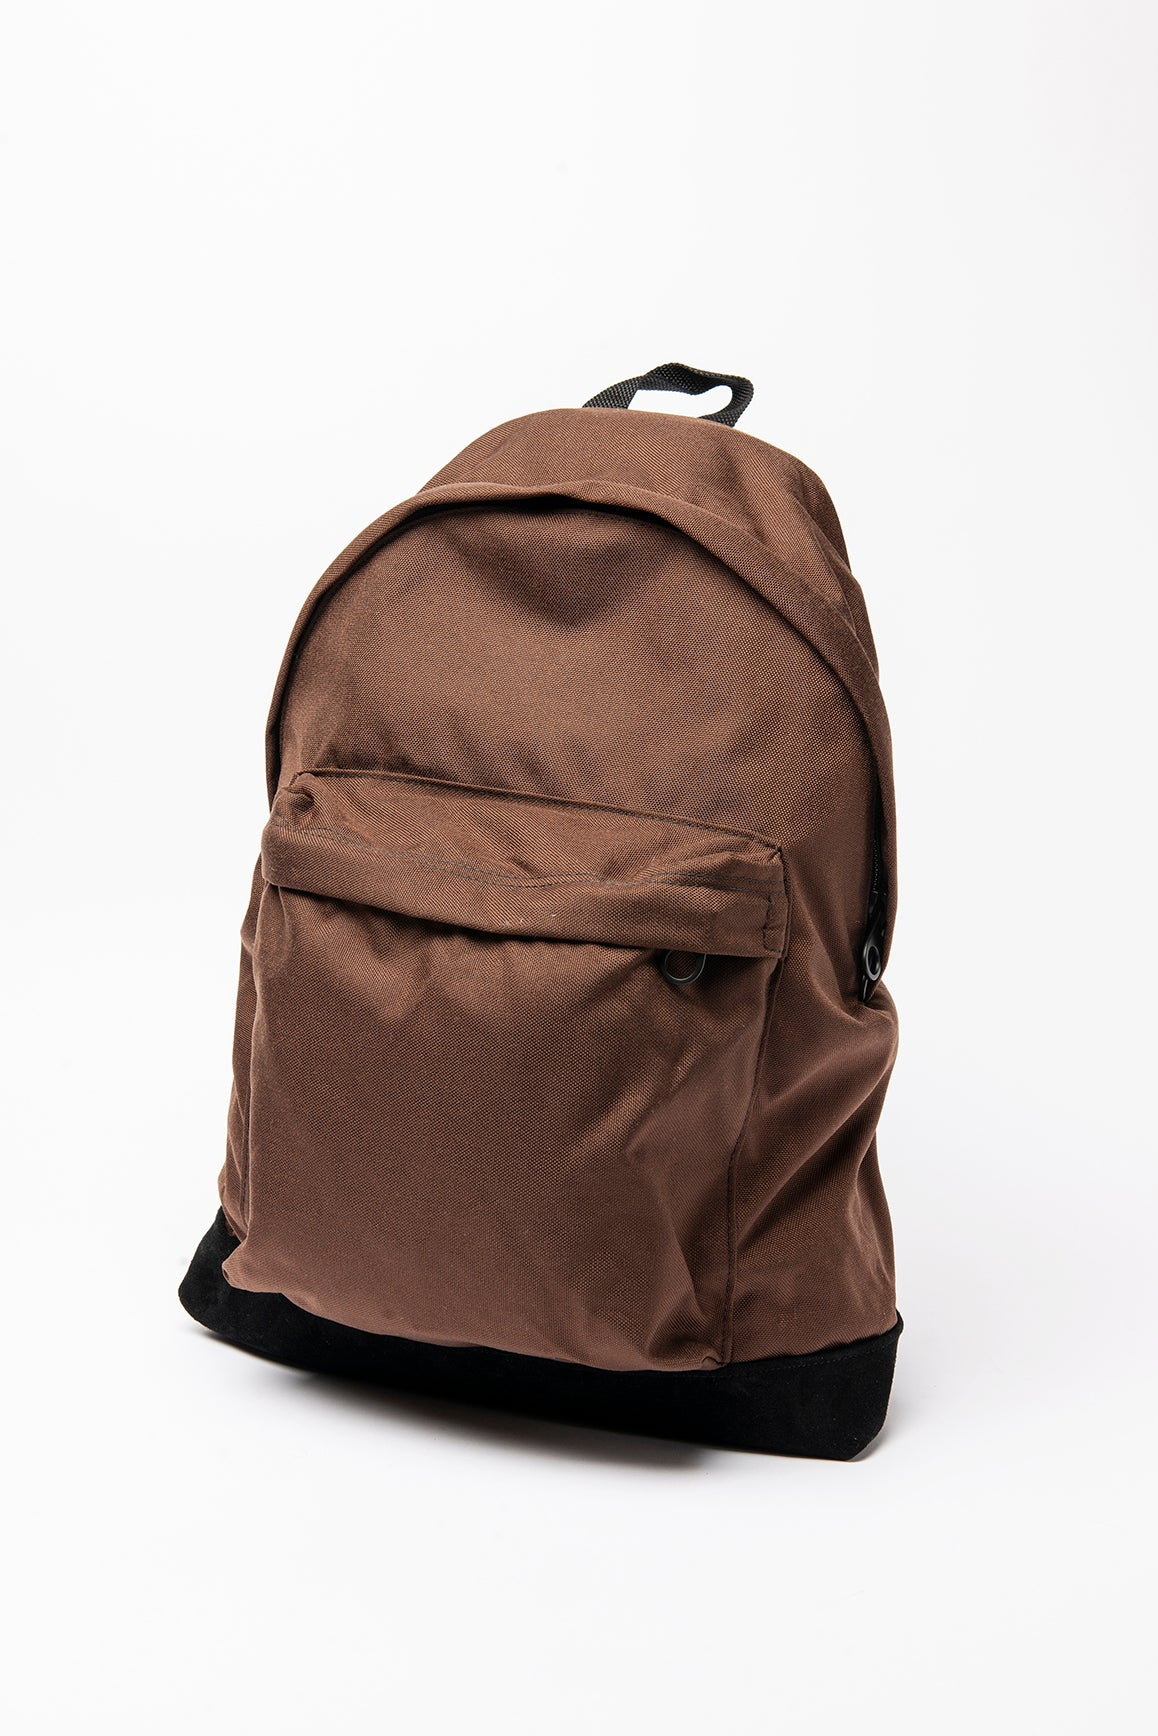 Backpack Two - Brown / Black Suede